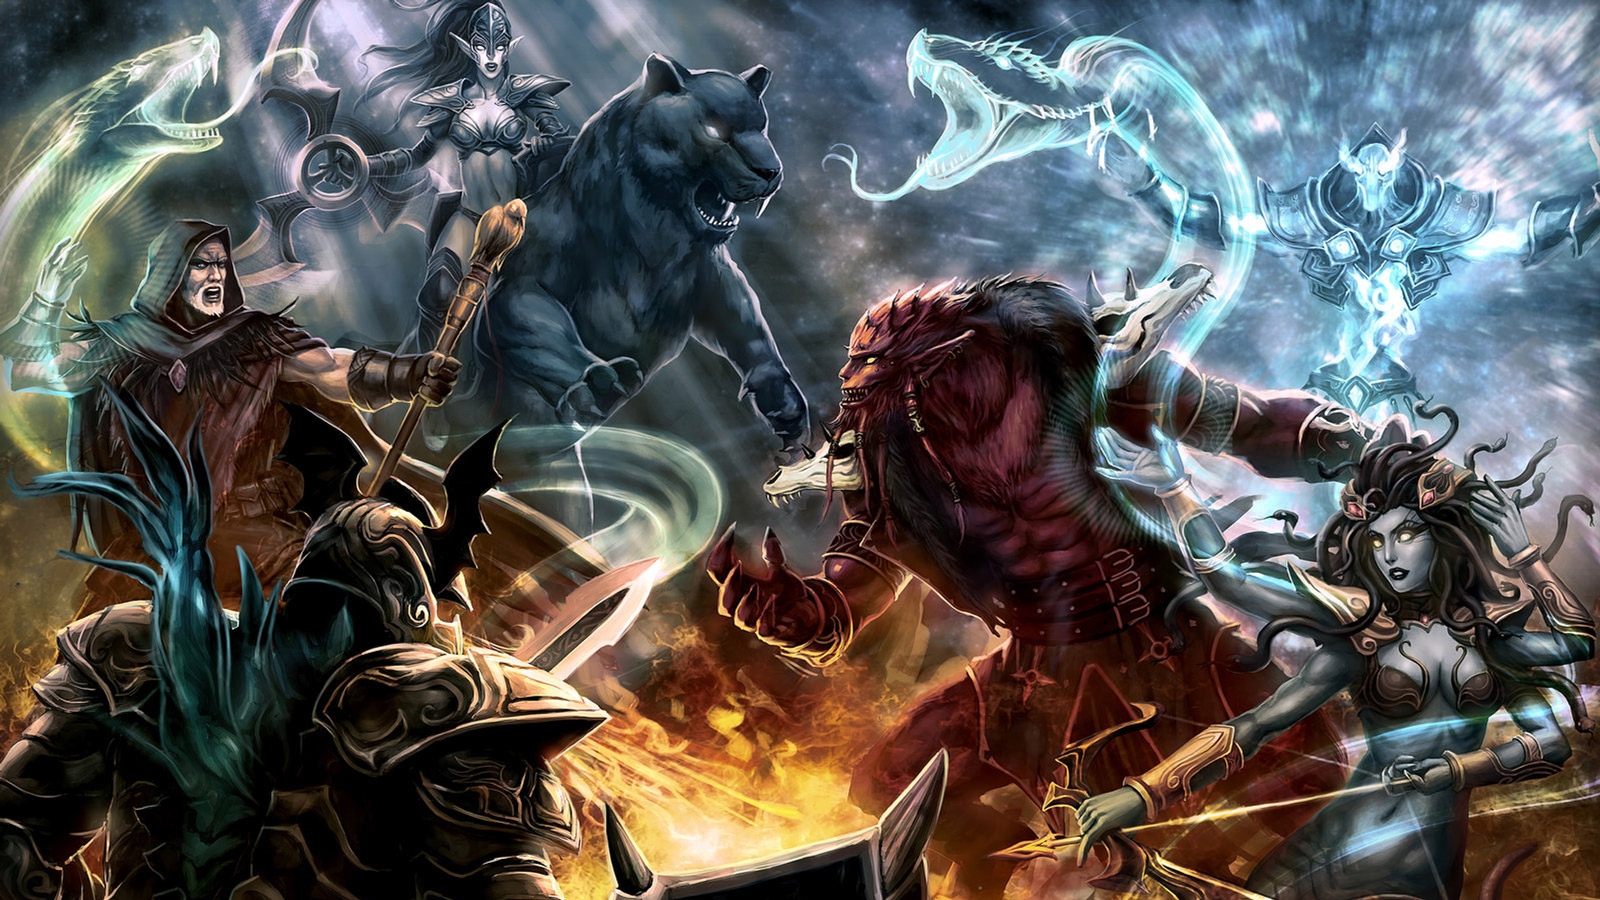 Free DotA: Defense of the Ancients Wallpaper in 1600x900